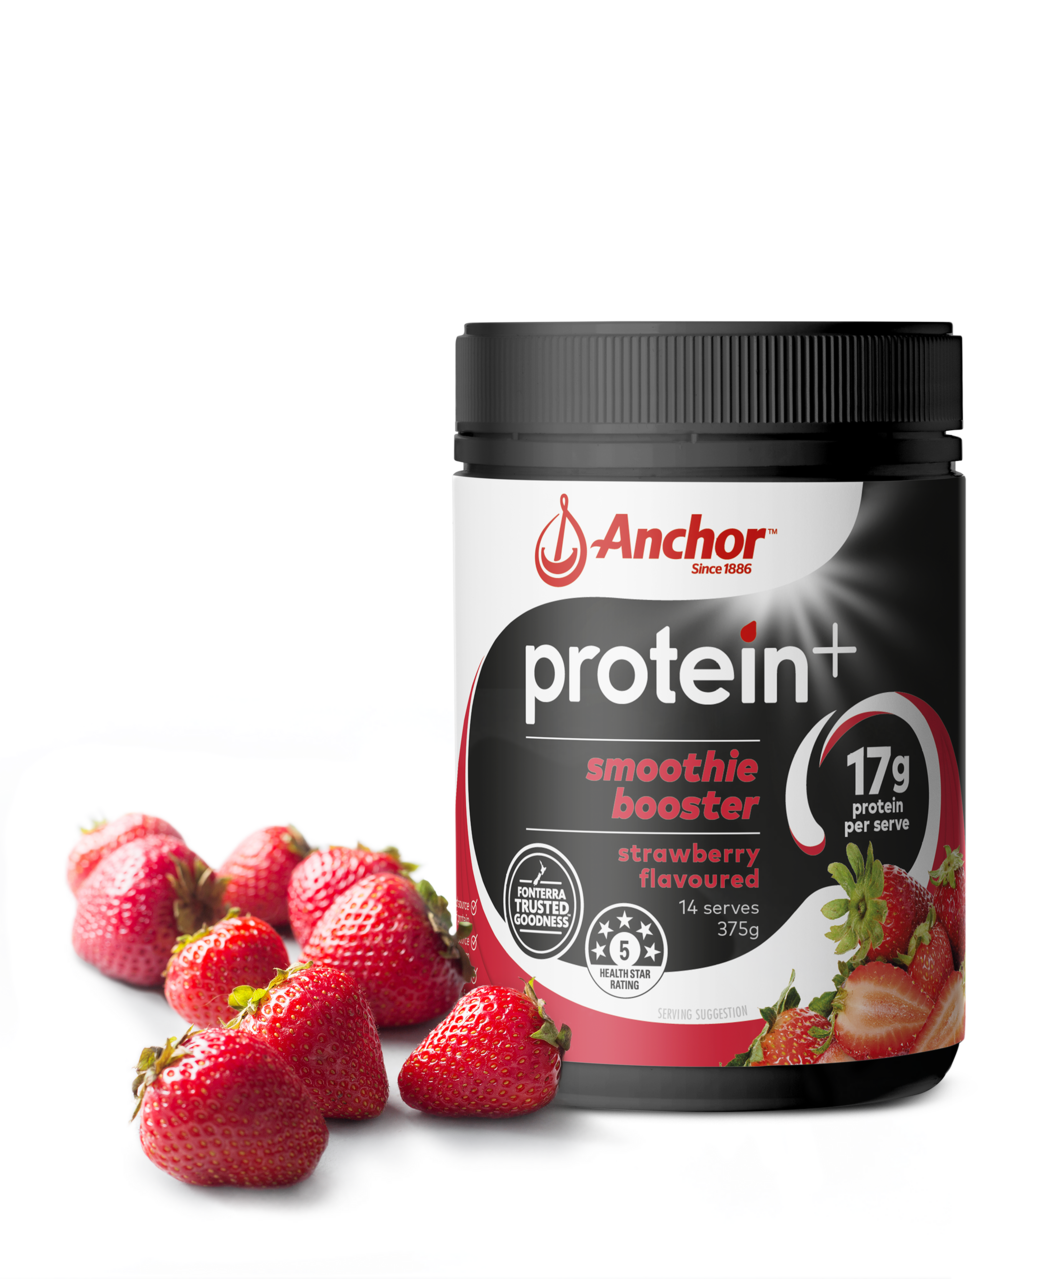 Anchor Protein+ Strawberry Smoothie Booster 375g pack